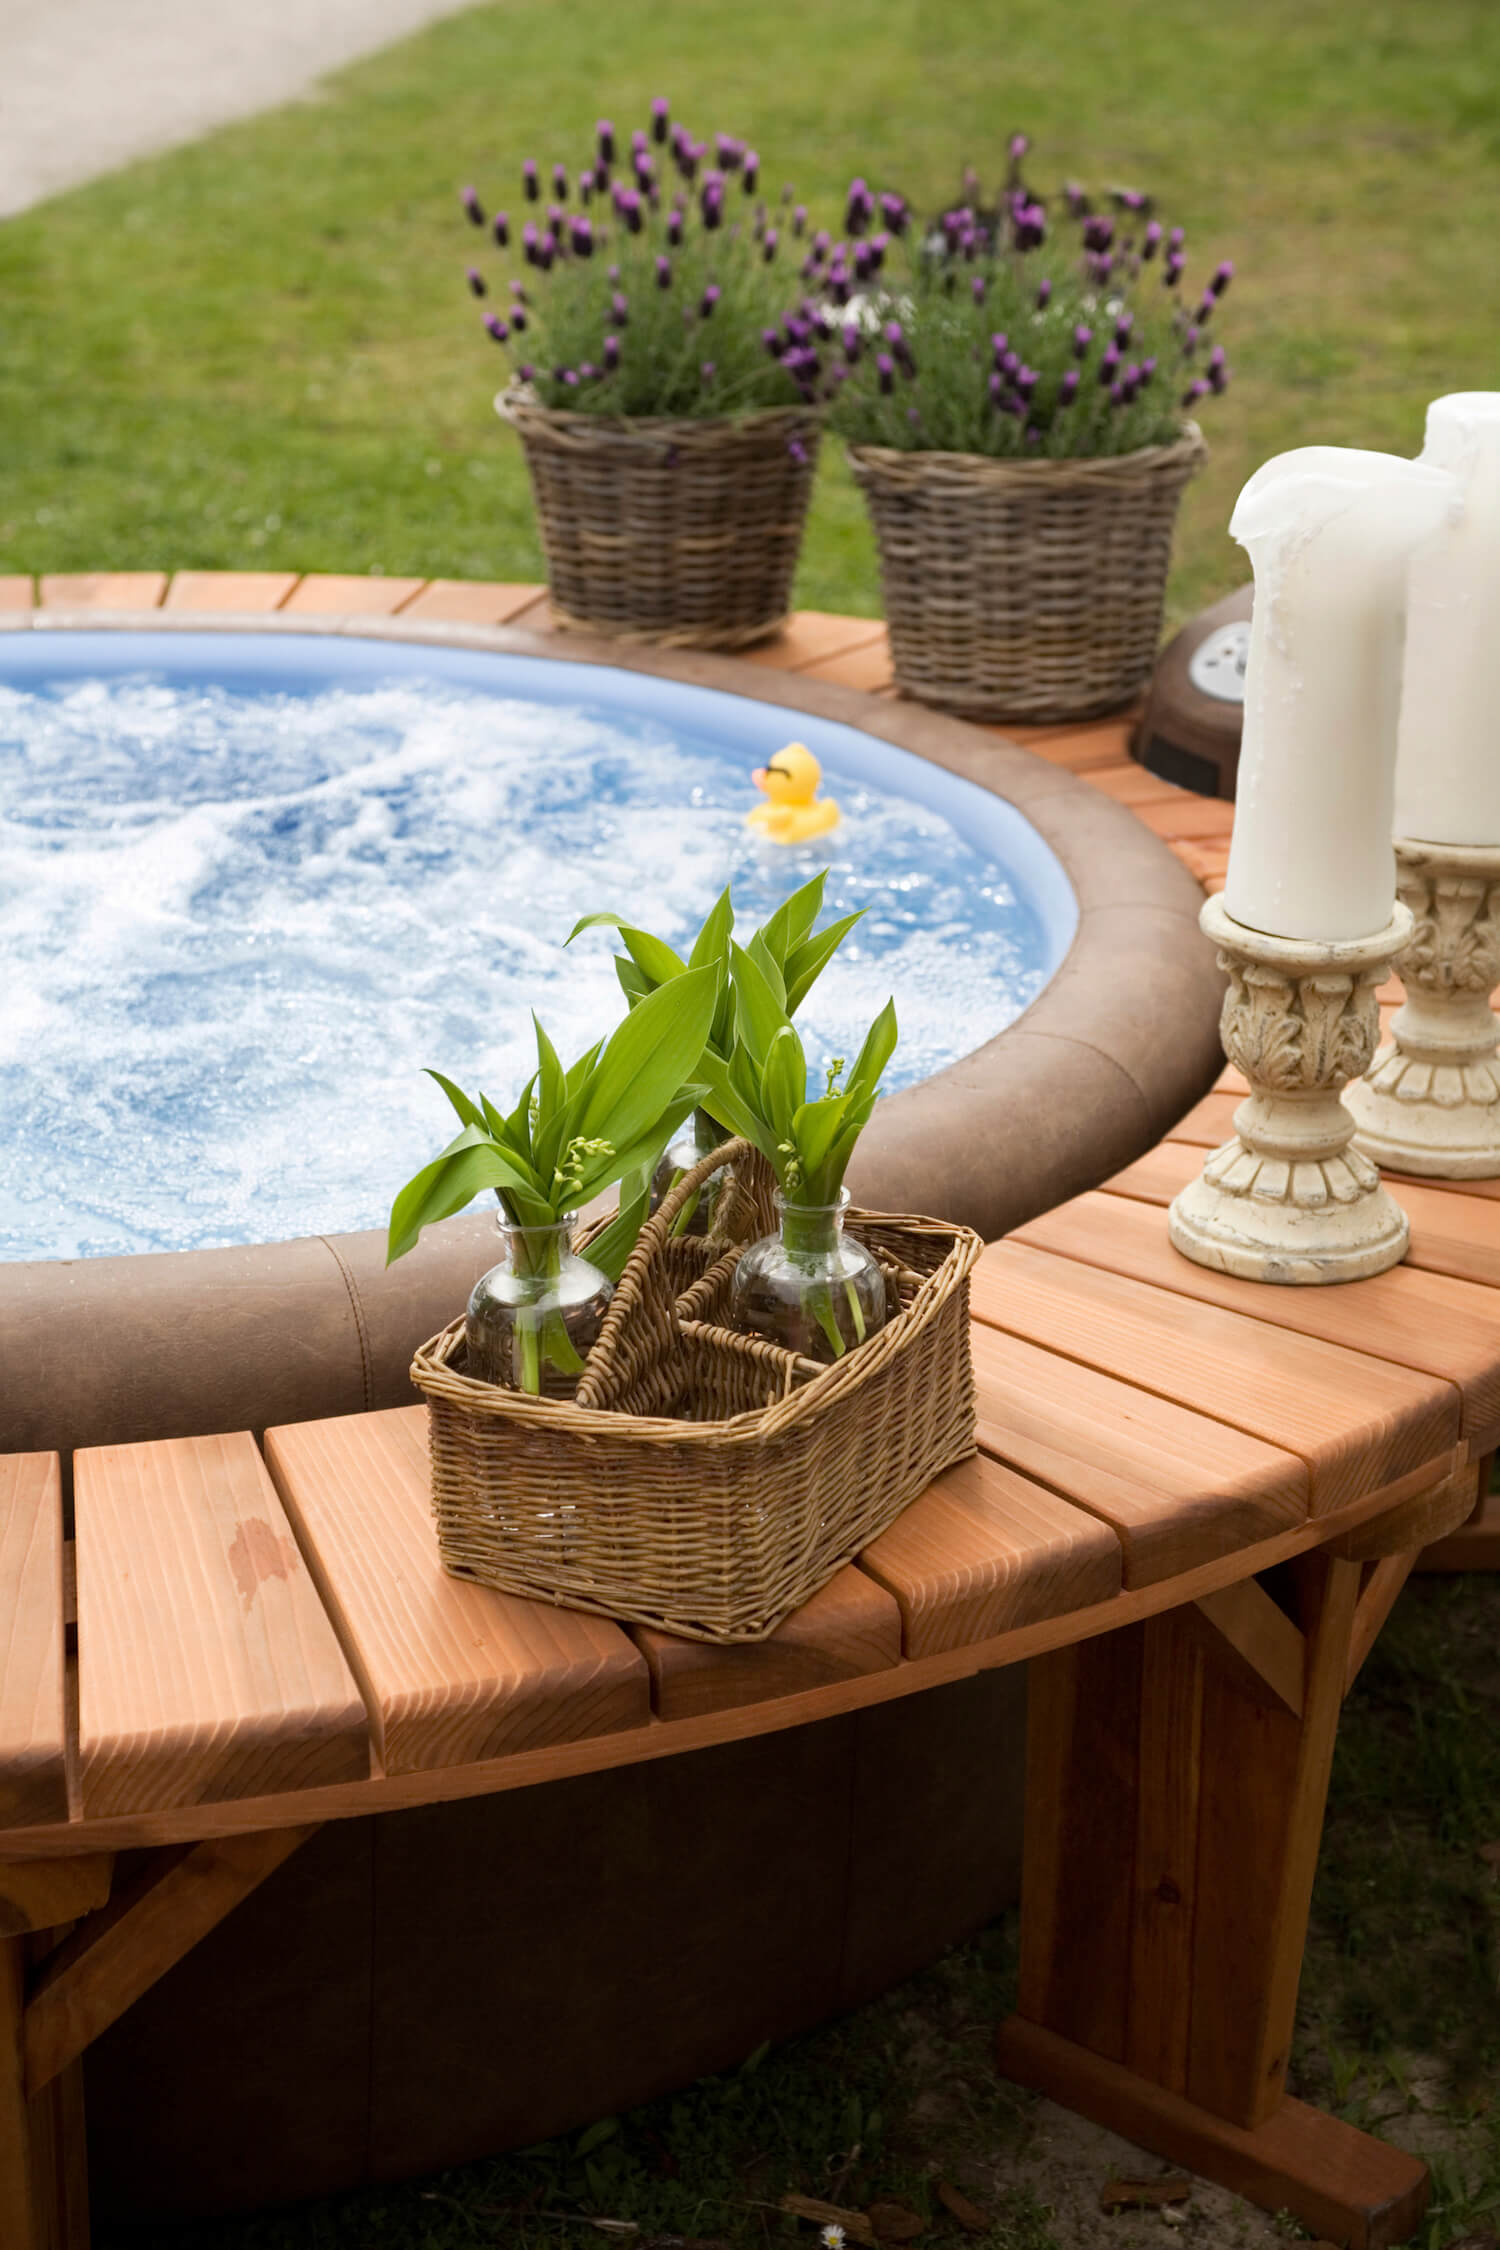 Swimming pool heaters for sale online uk 1st direct - Swimming pool heat pumps for sale ...